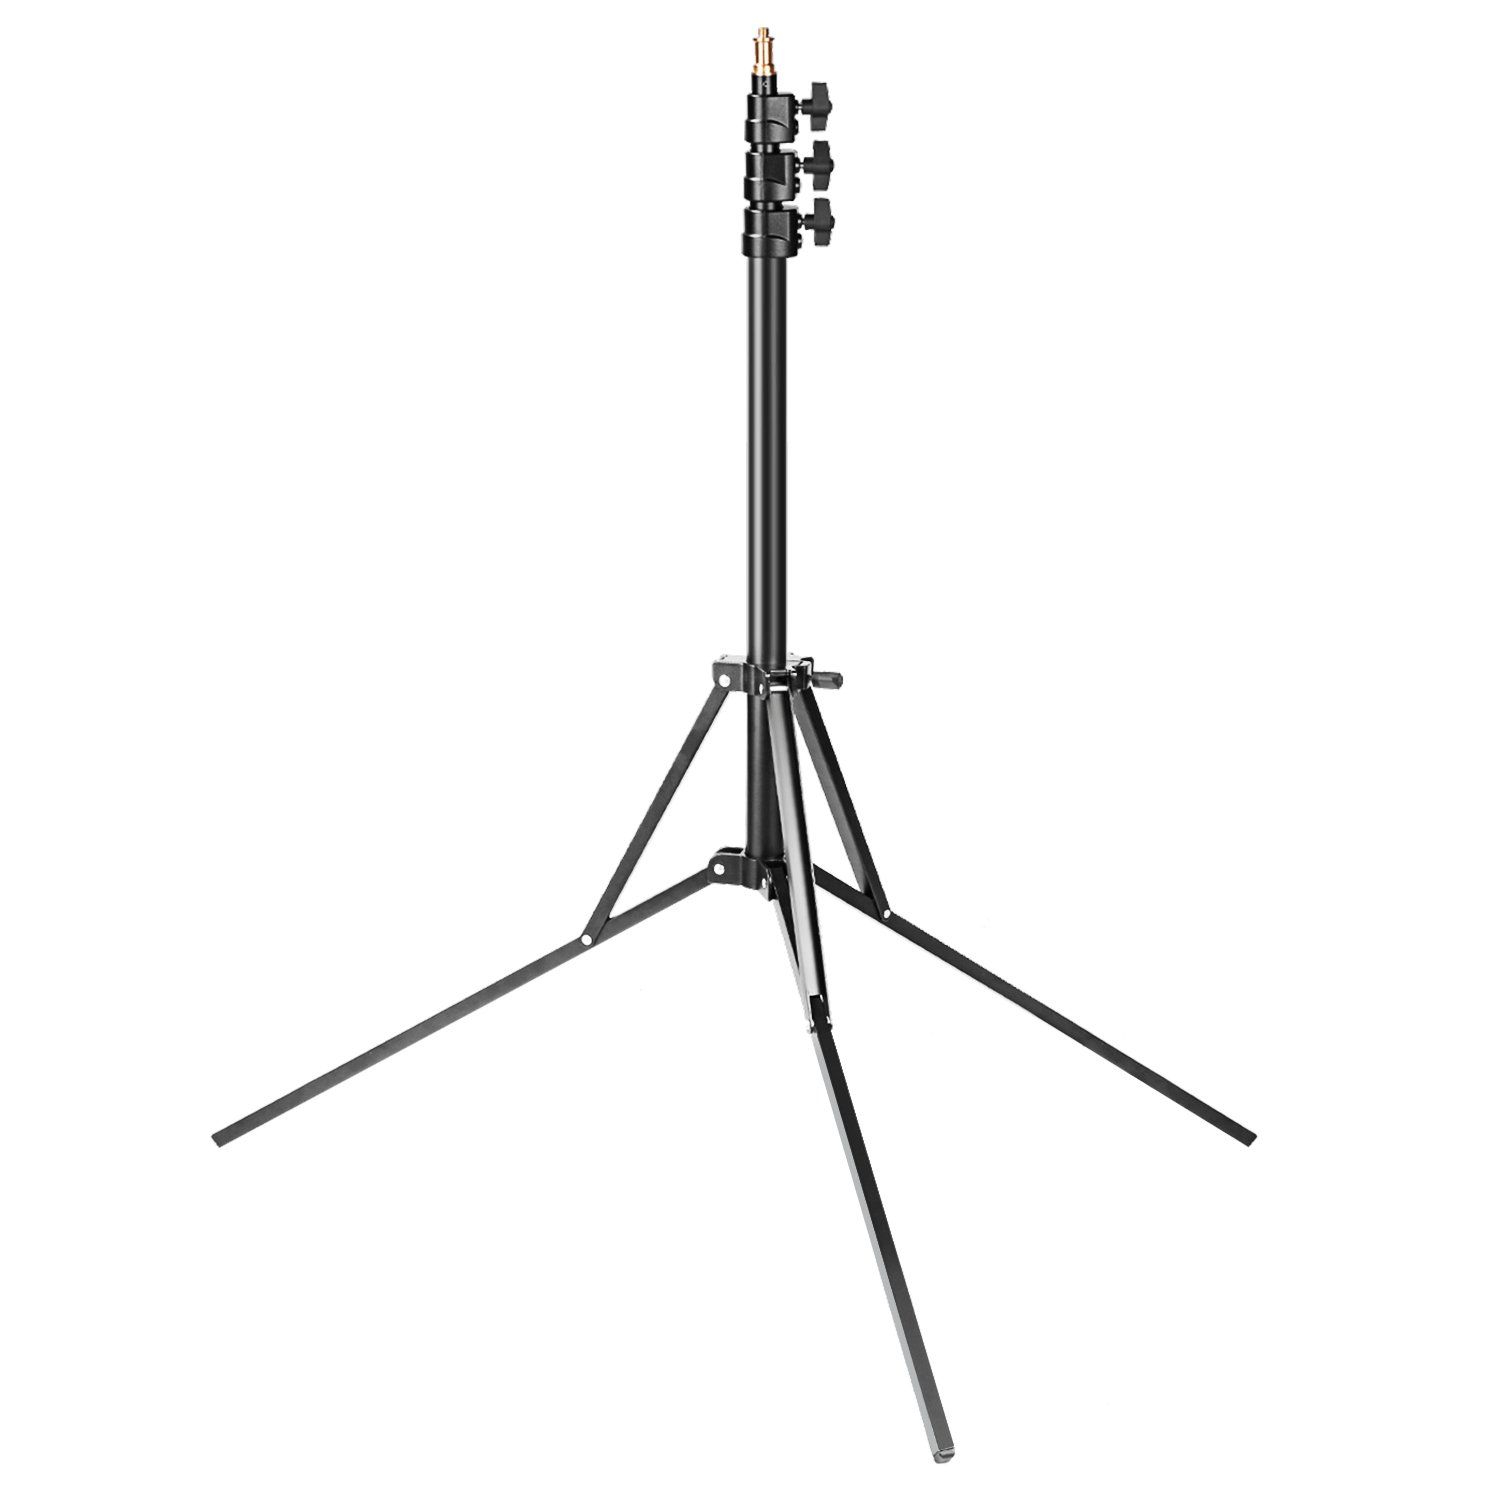 Neewer 6.9 feet Compact Portable Photography Light Stand, Reverse Folding Leg Stand for Ring Light, Softbox, Strobe Light, Reflector and Other Equipment, Heavy Duty Aluminum Alloy 10090792